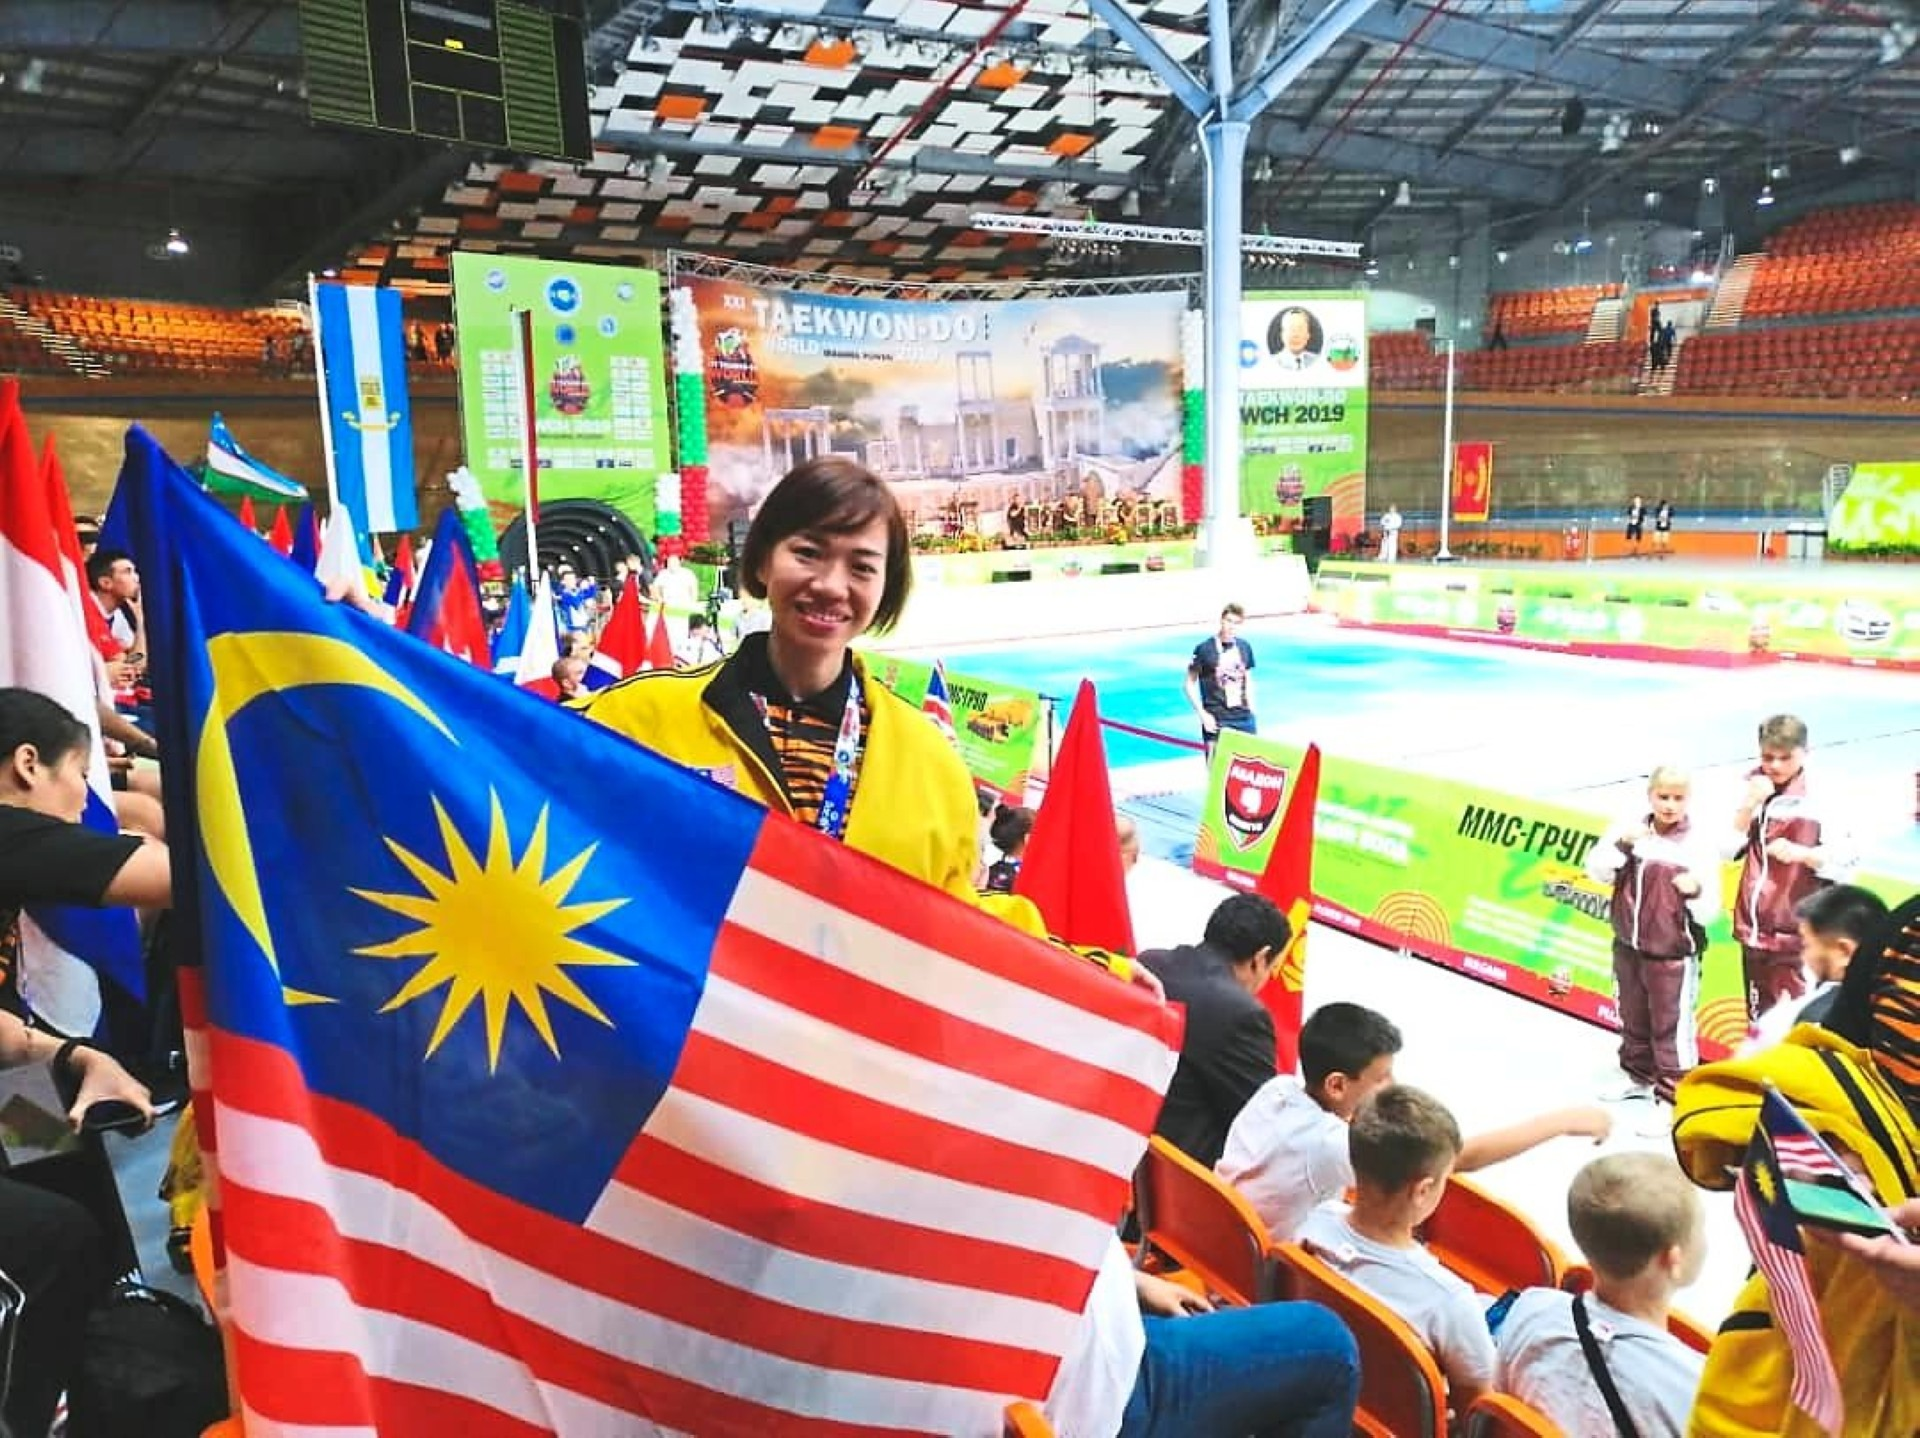 Lim at the 21st ITF Taekwondo World Championship this year in Plovdiv, Bulgaria where she won the gold medal and put Malaysia on the world map.  Photos: Michelle Lim